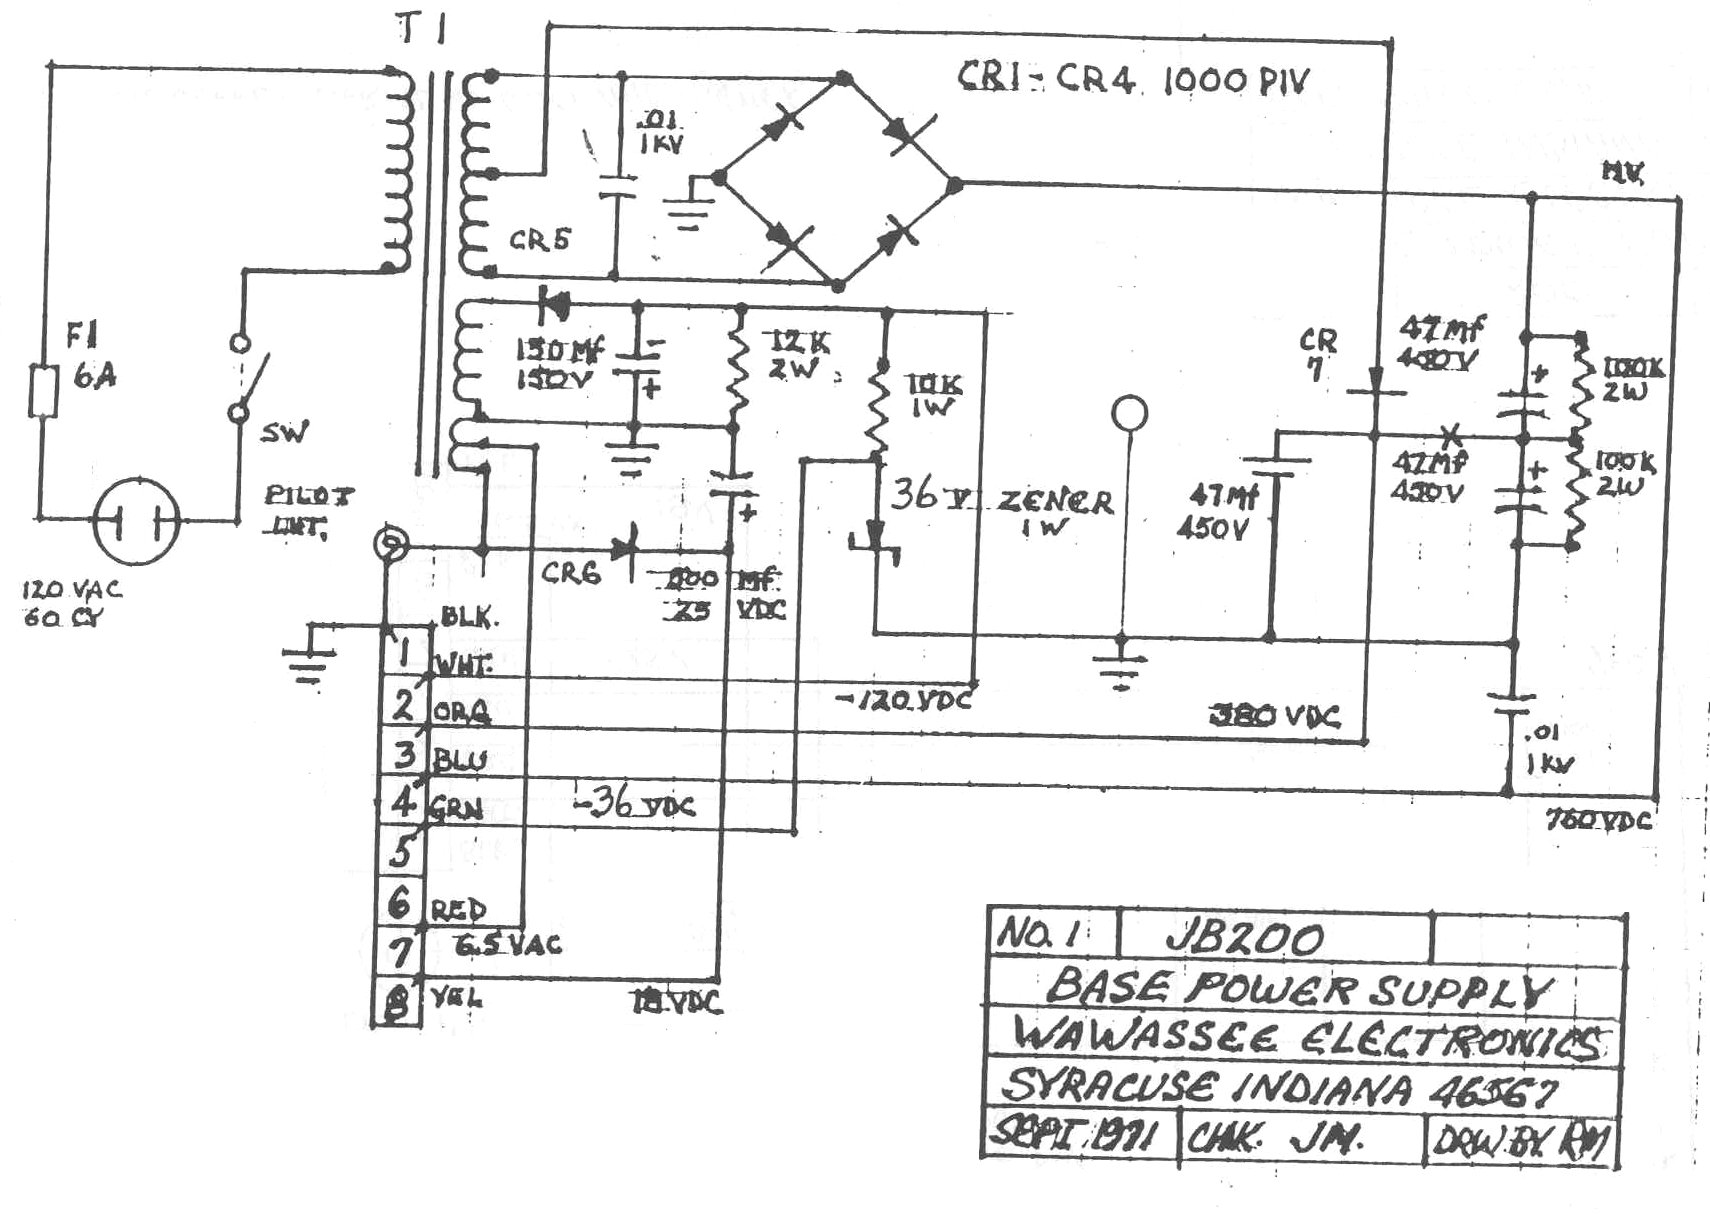 hight resolution of jb 200 power supply schematic